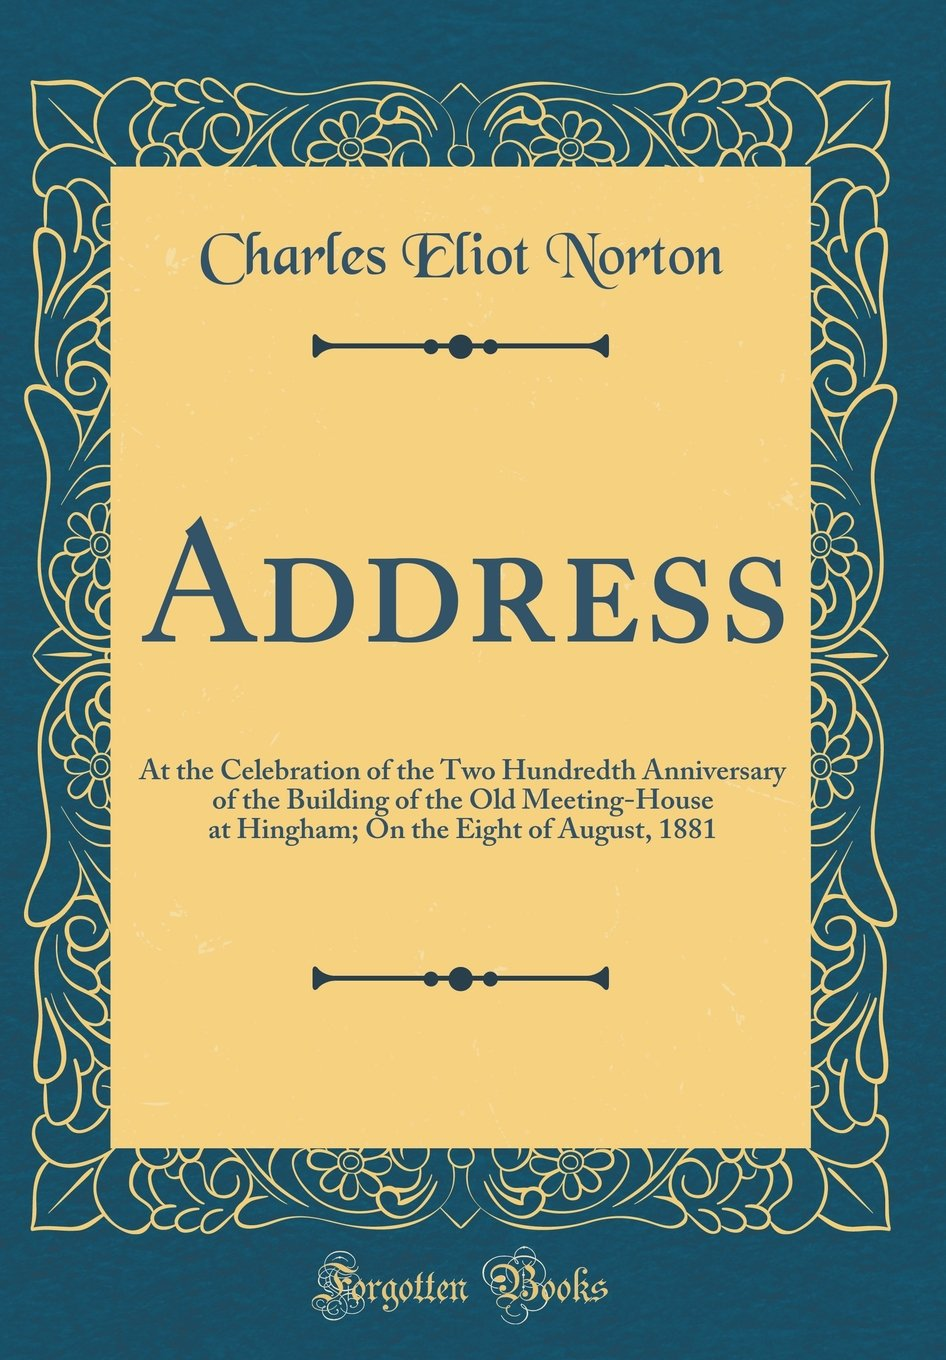 Download Address: At the Celebration of the Two Hundredth Anniversary of the Building of the Old Meeting-House at Hingham; On the Eight of August, 1881 (Classic Reprint) ebook